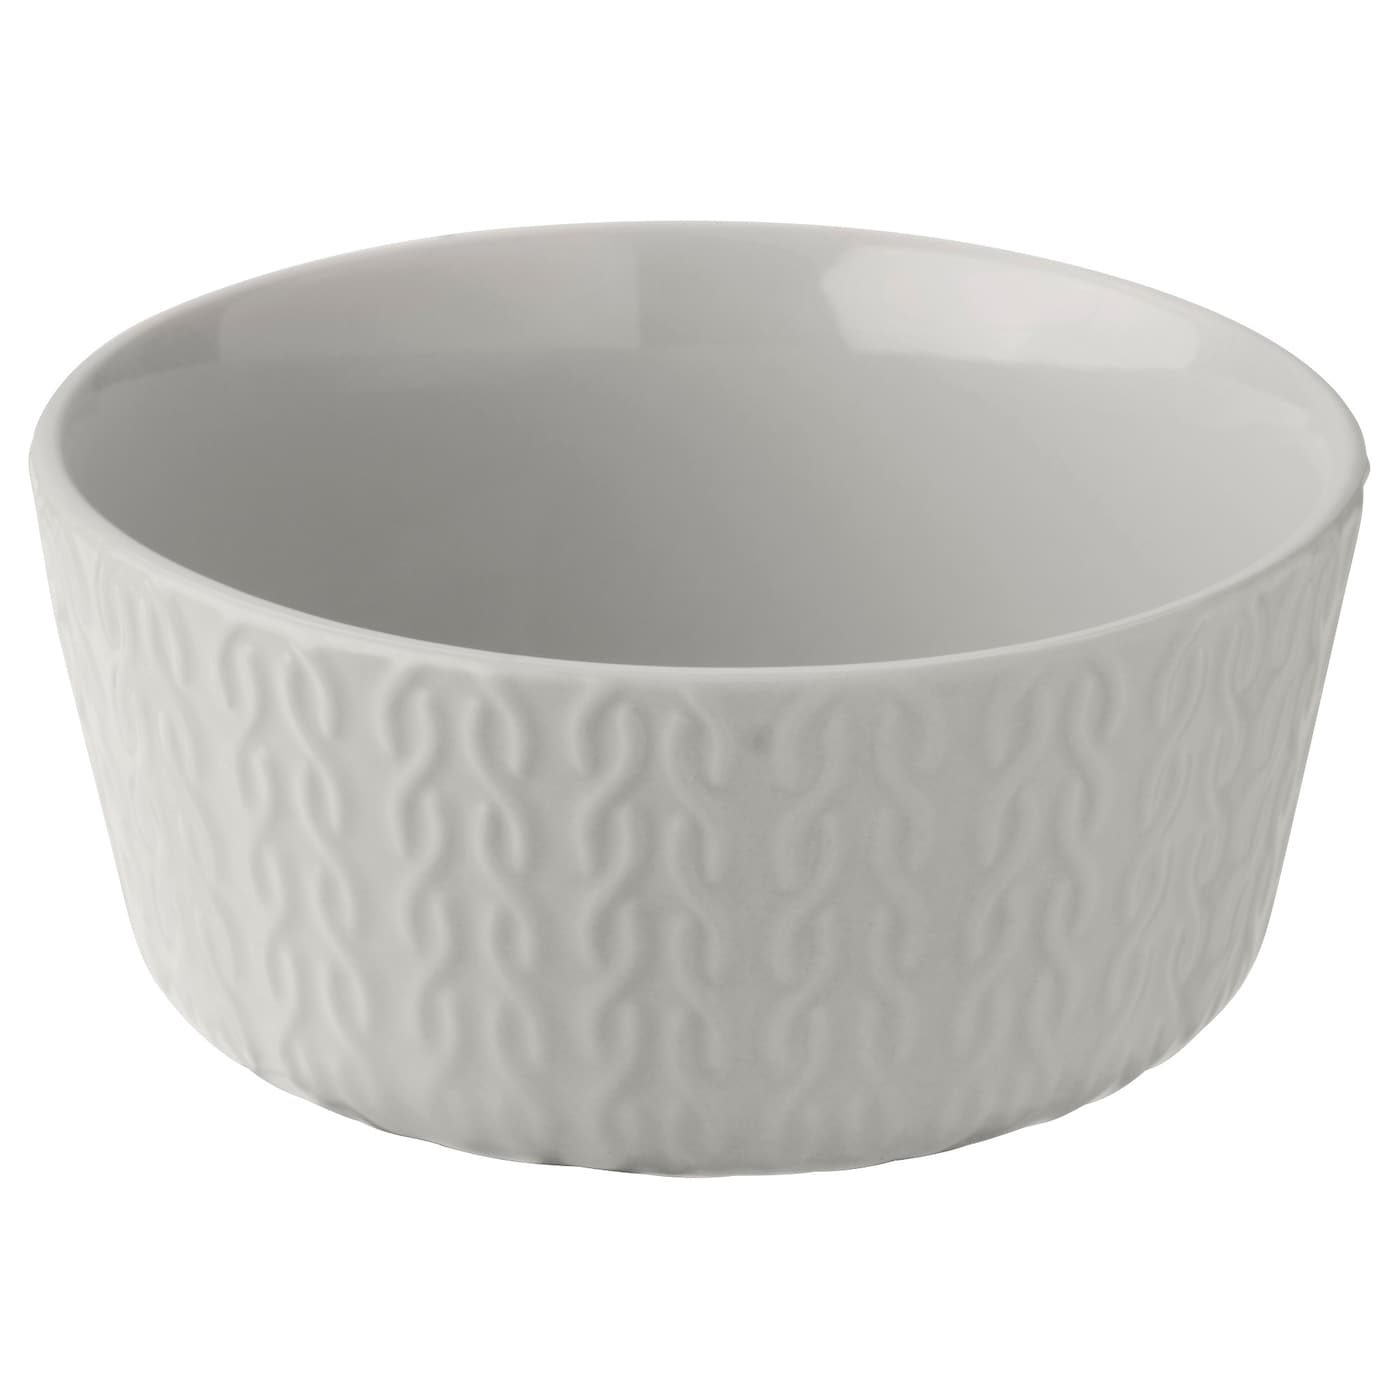 IKEA VINTER 2017 bowl